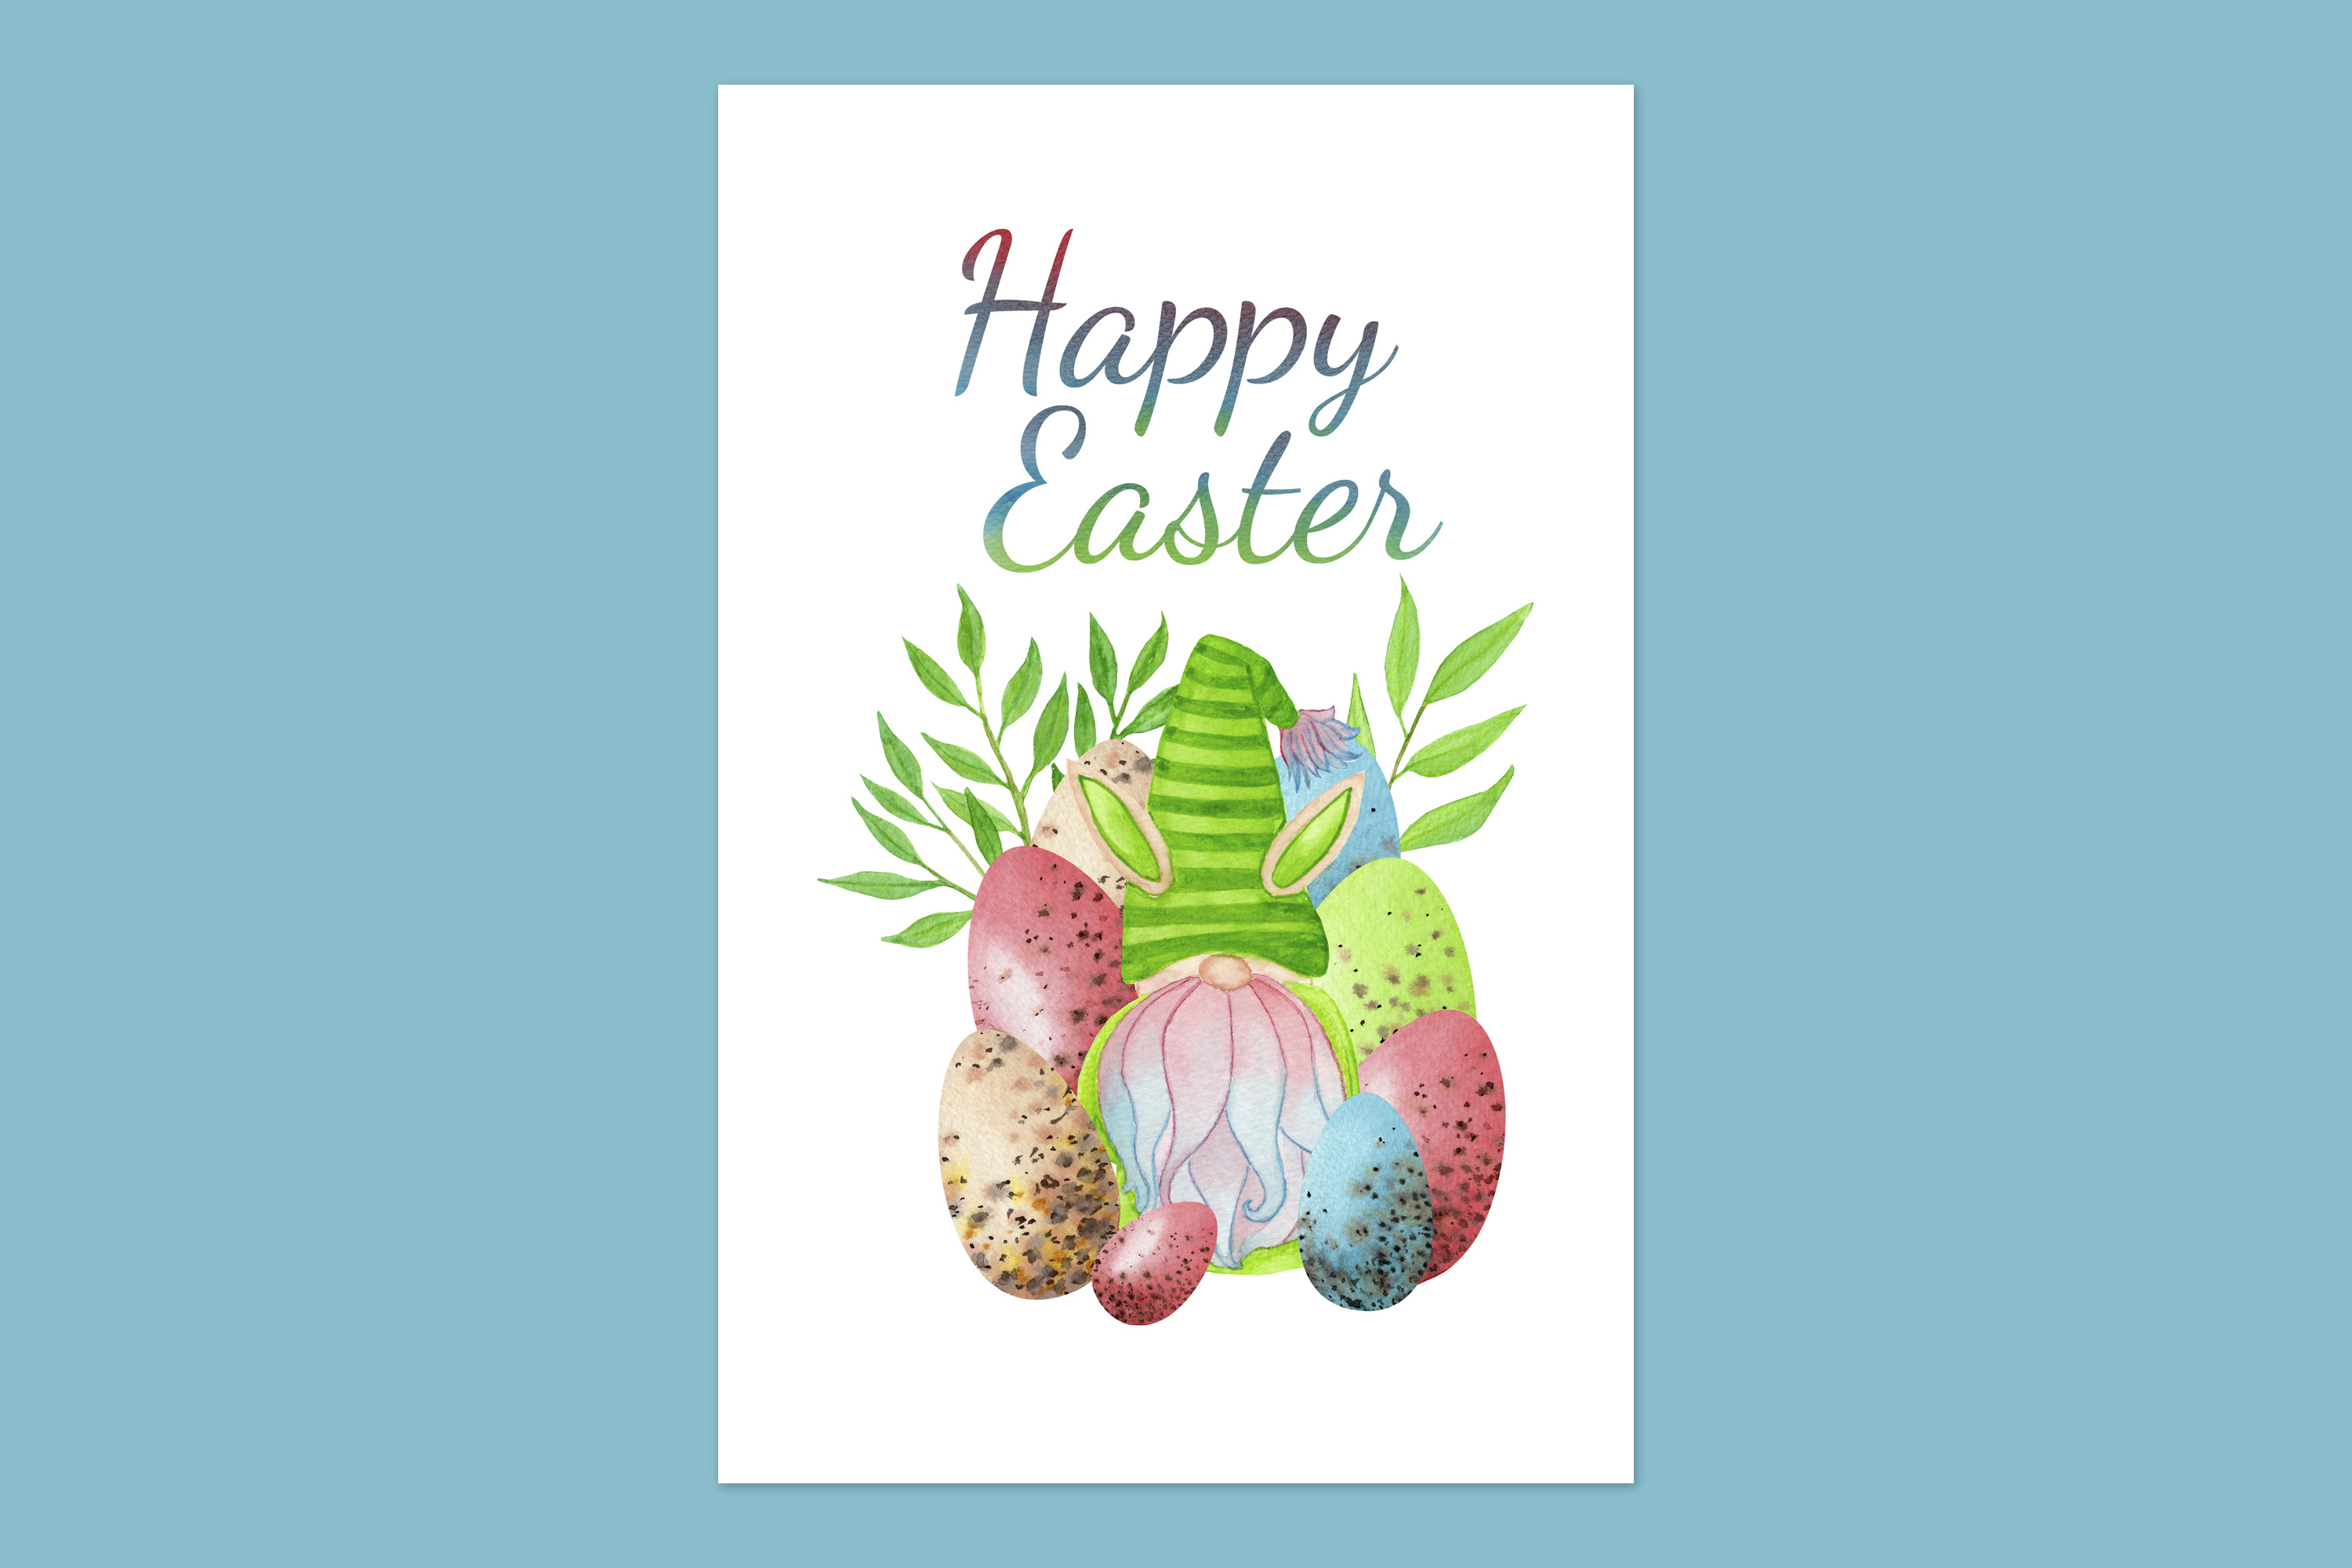 Download Free Easter Card With Easter Bunny Gnome Graphic By S Yanyeva for Cricut Explore, Silhouette and other cutting machines.